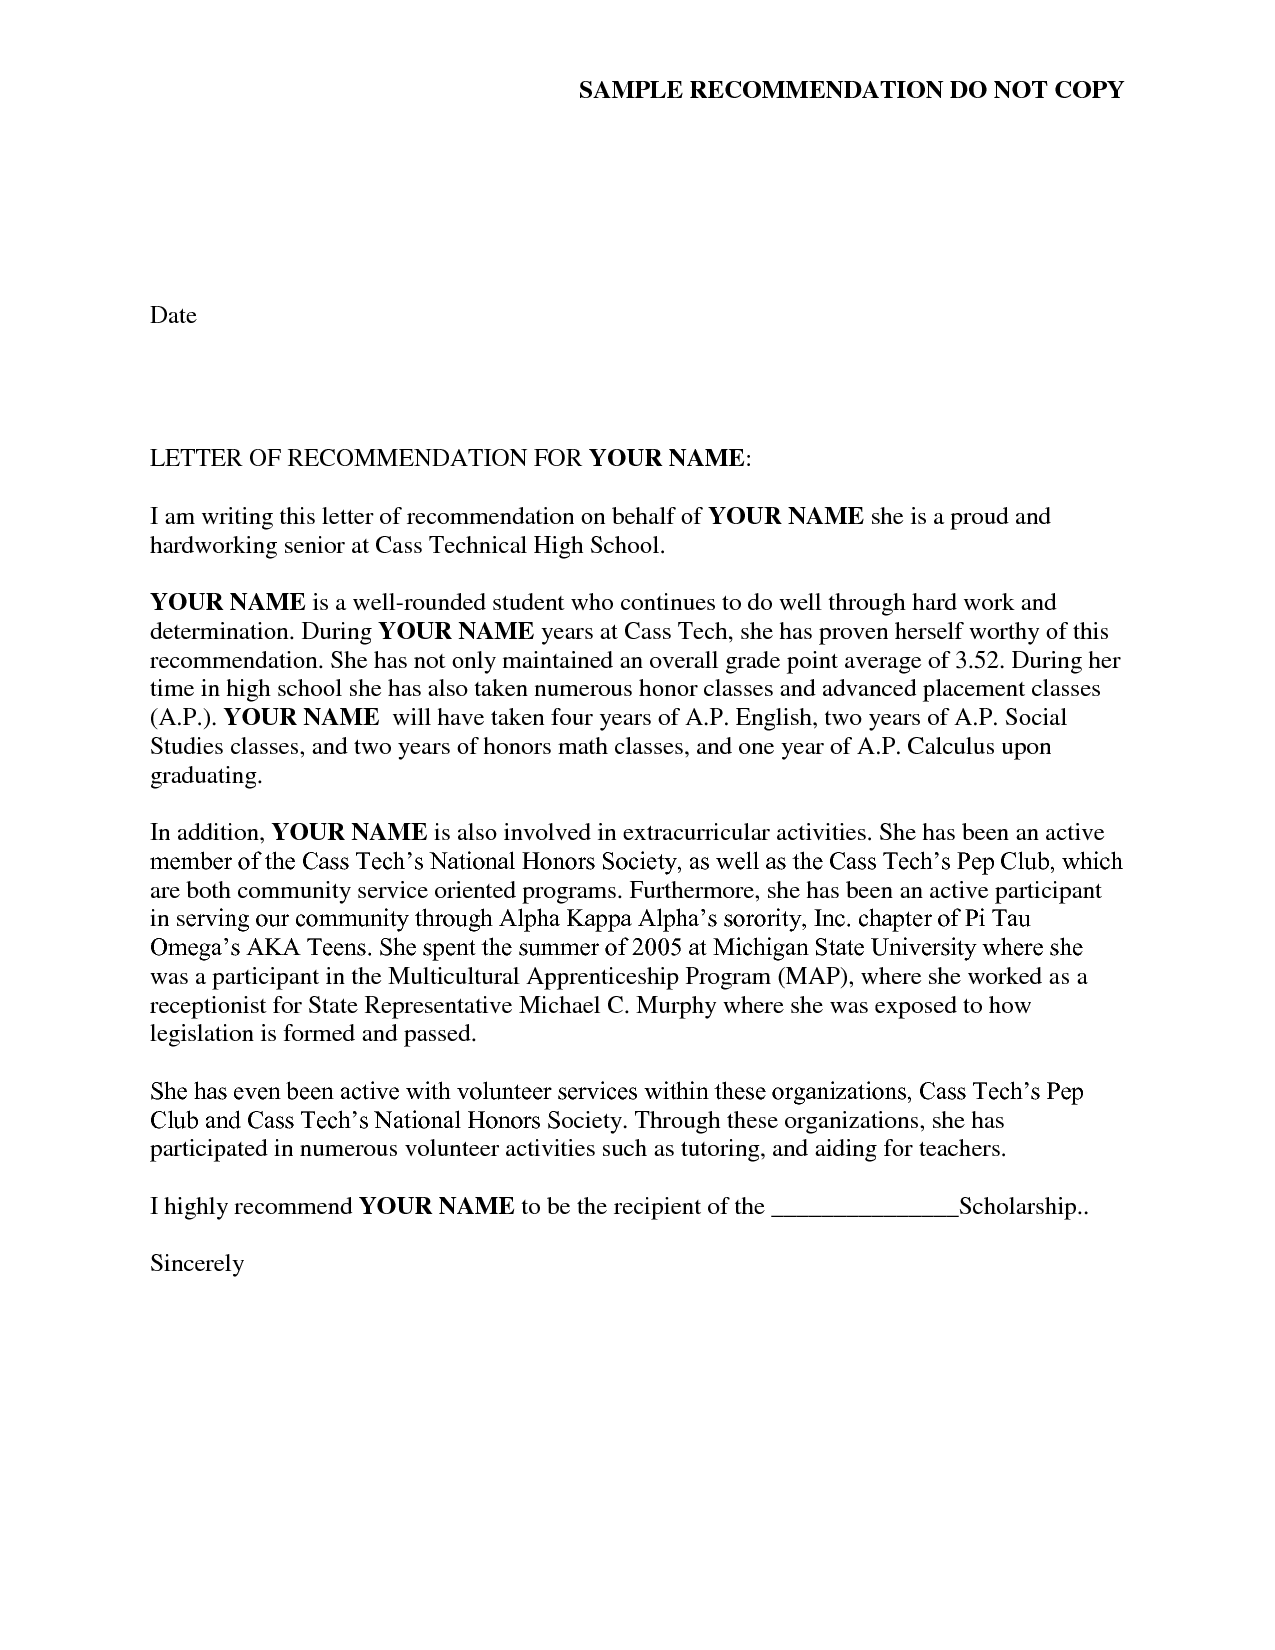 Reference Letter Of Recommendation Sample Sample Alpha Kappa Alpha